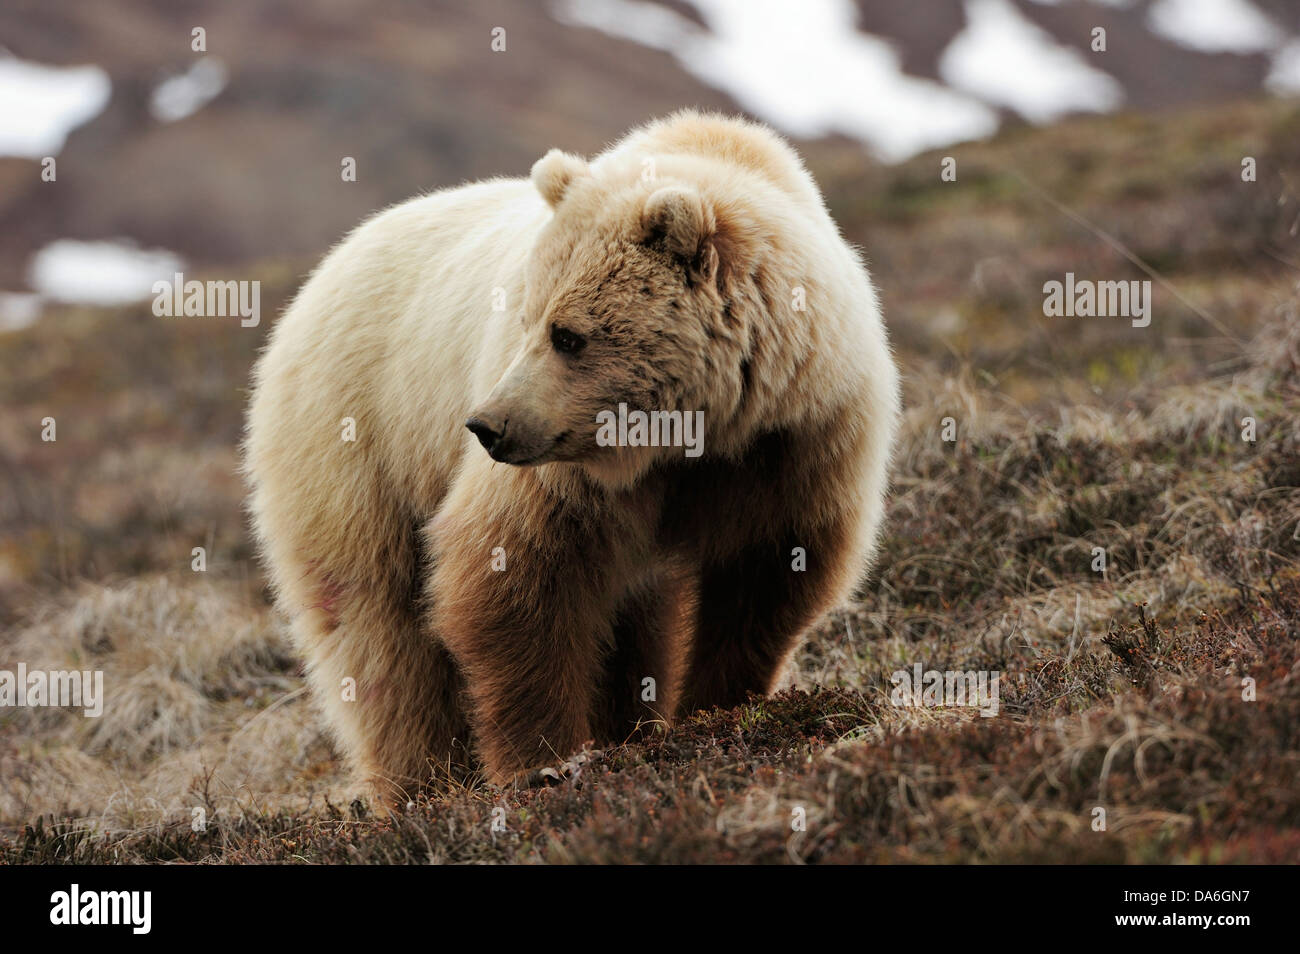 Grizzly Bear (Ursus arctos horribilis) in the Arctic tundra - Stock Image